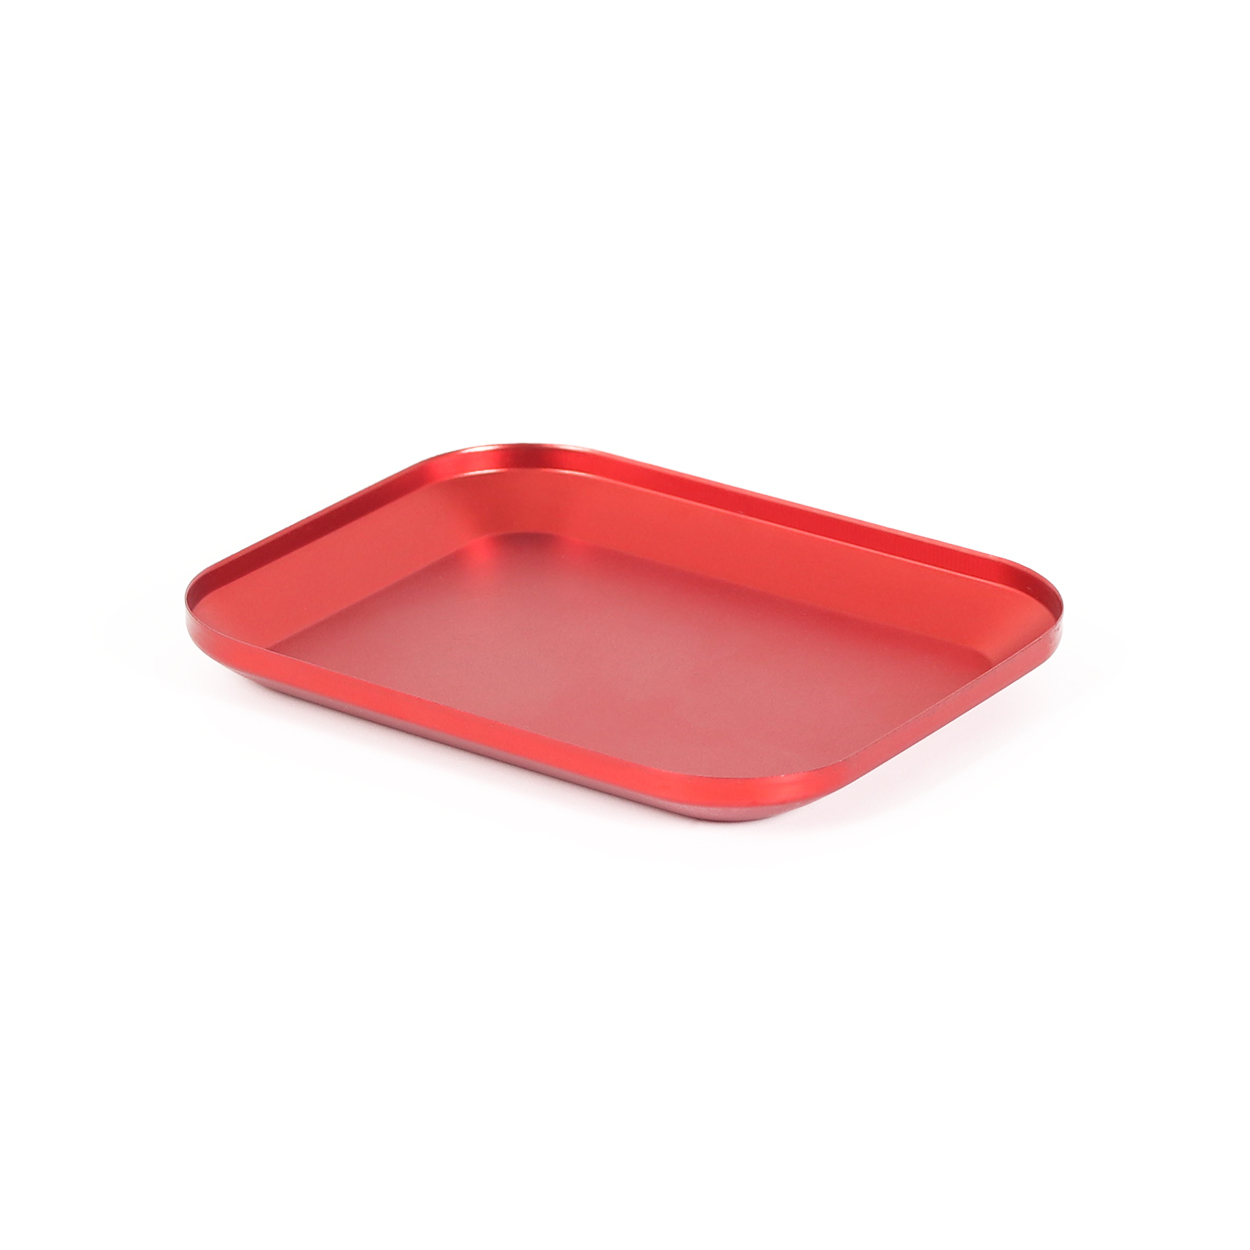 Metal Aluminium Alloy Screw Tray with Magnetic Pad Plate for RC Crawler Car Boat Drone Quadcopter RC Model Repair Tool Part red